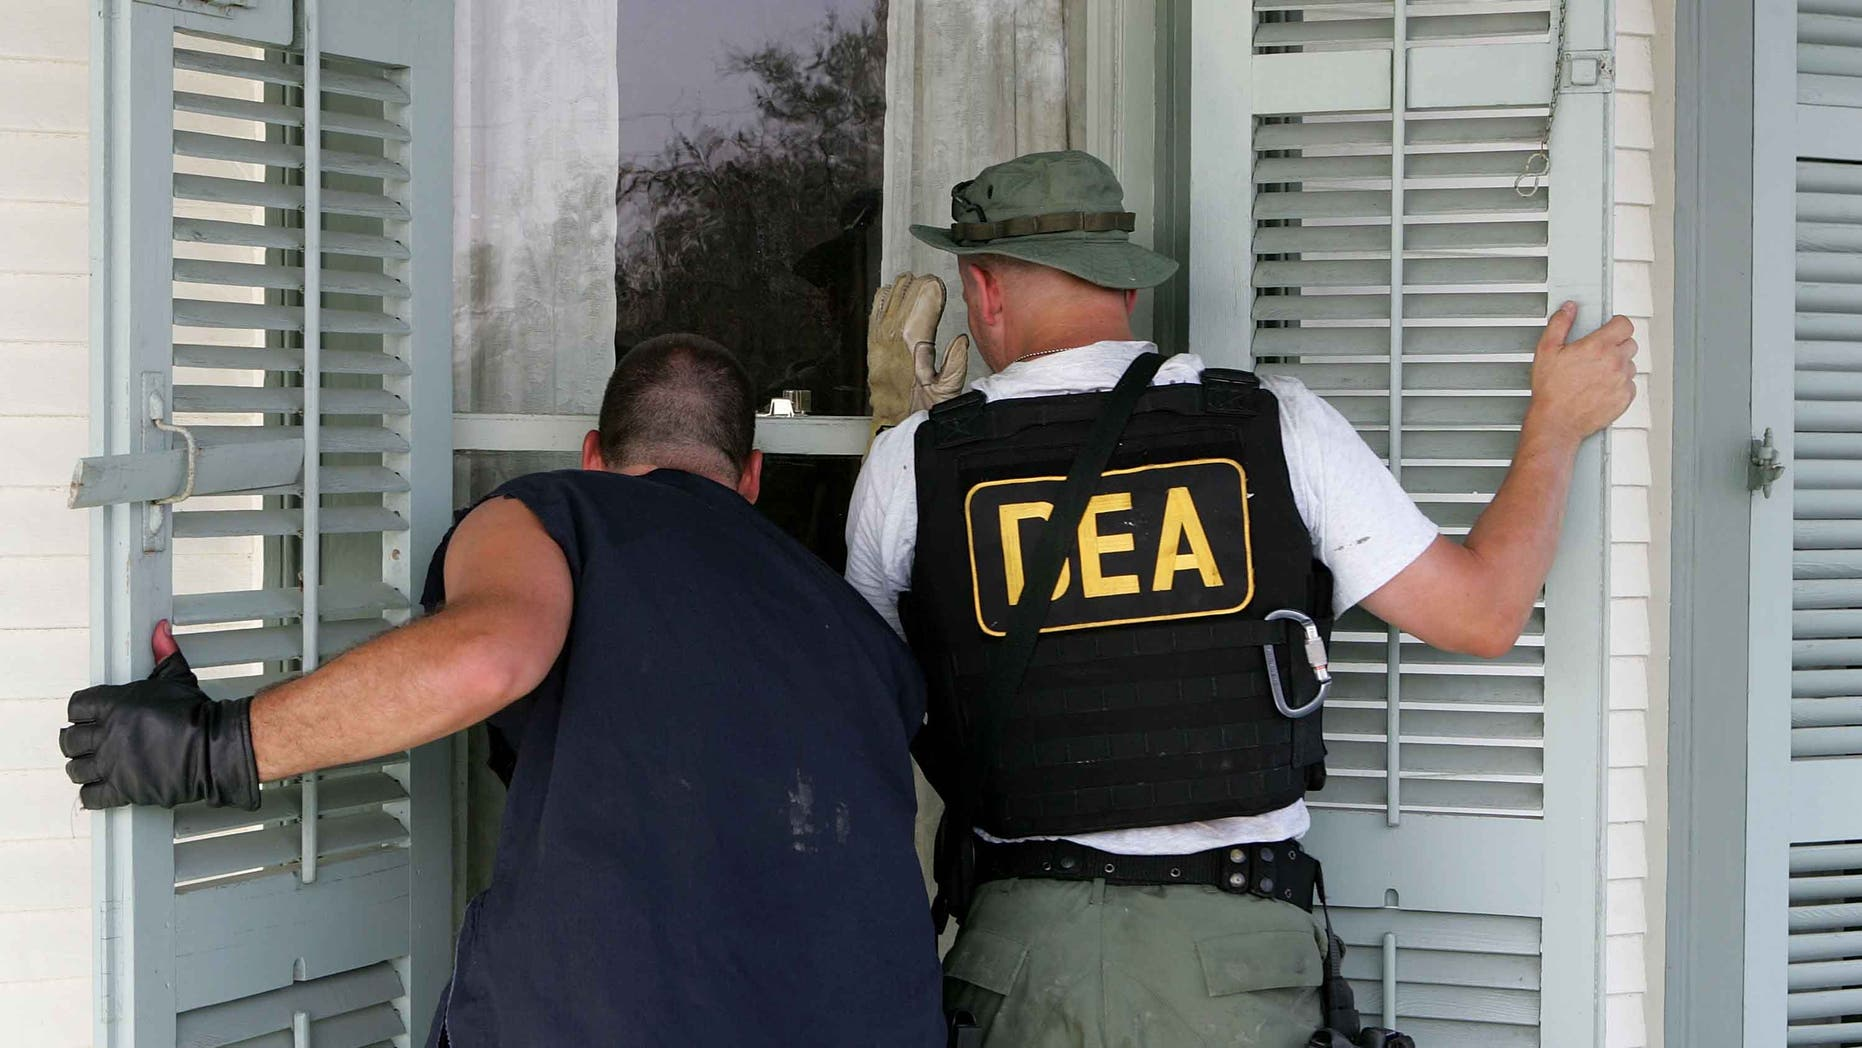 NEW ORLEANS - SEPTEMBER 10:  DEA agents look into a window of a house in the while searching for victims in the Ninth Ward district  September 10, 2005 in New Orleans, Louisiana. Rescue crews continue to search homes searching for hold outs and deceased people.  (Photo by Justin Sullivan/Getty Images)